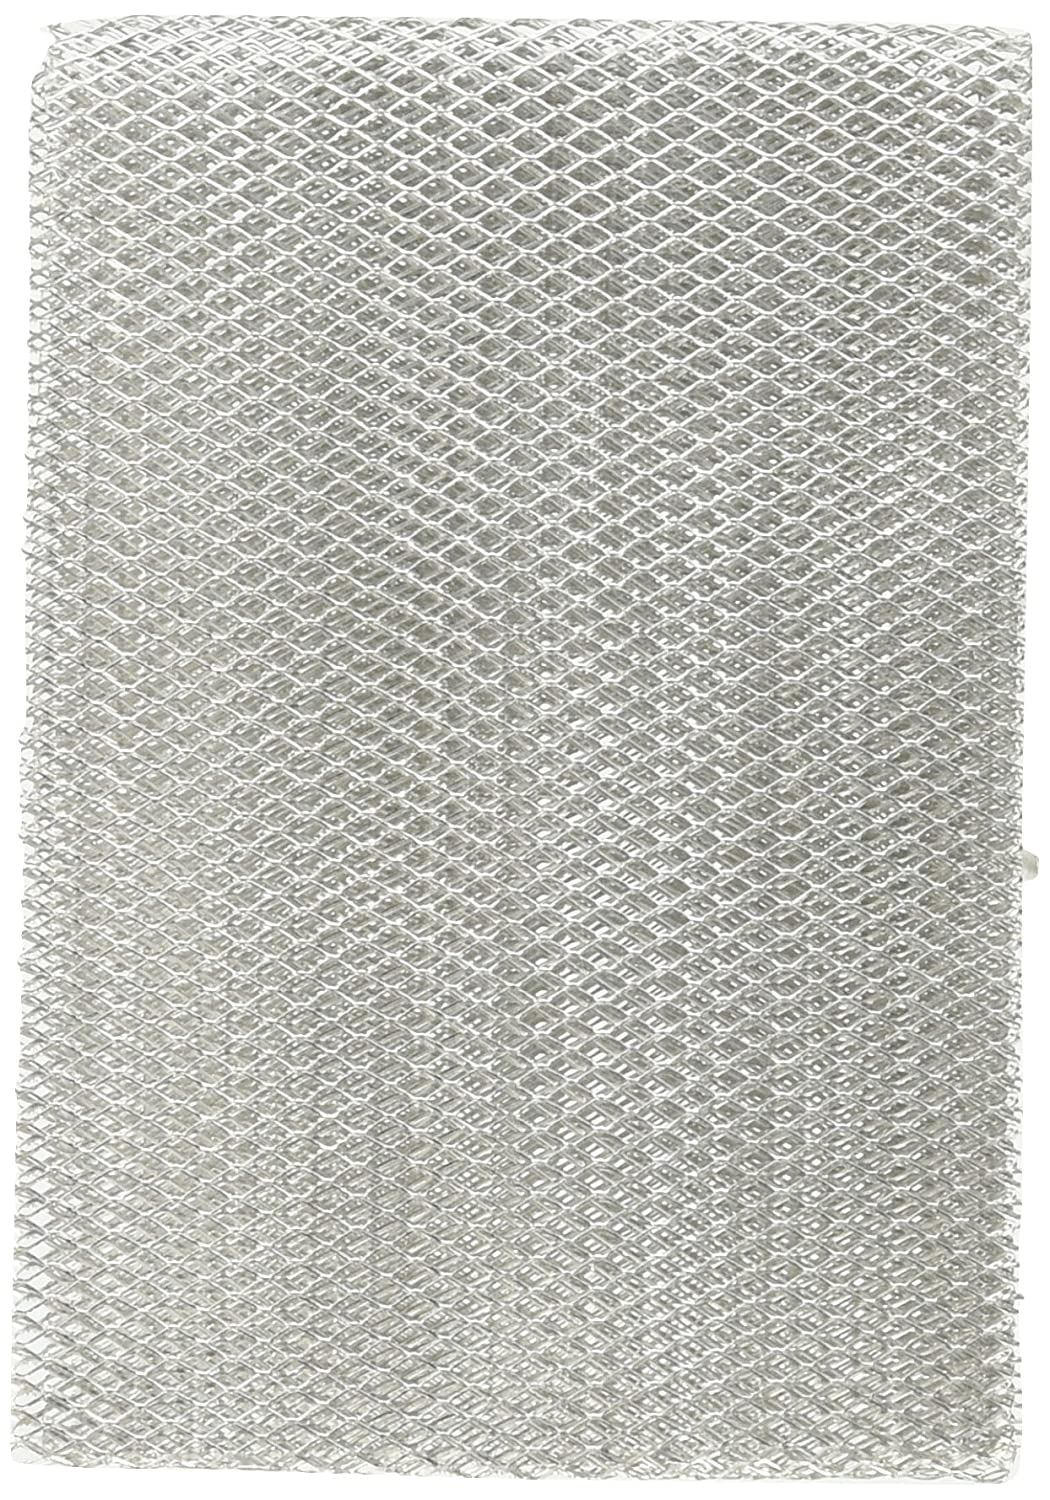 Amazon.com: ACTIVA Activ-Wire Mesh - 12 by 24 - 1/4 x 1/8 Inch Sheet ...